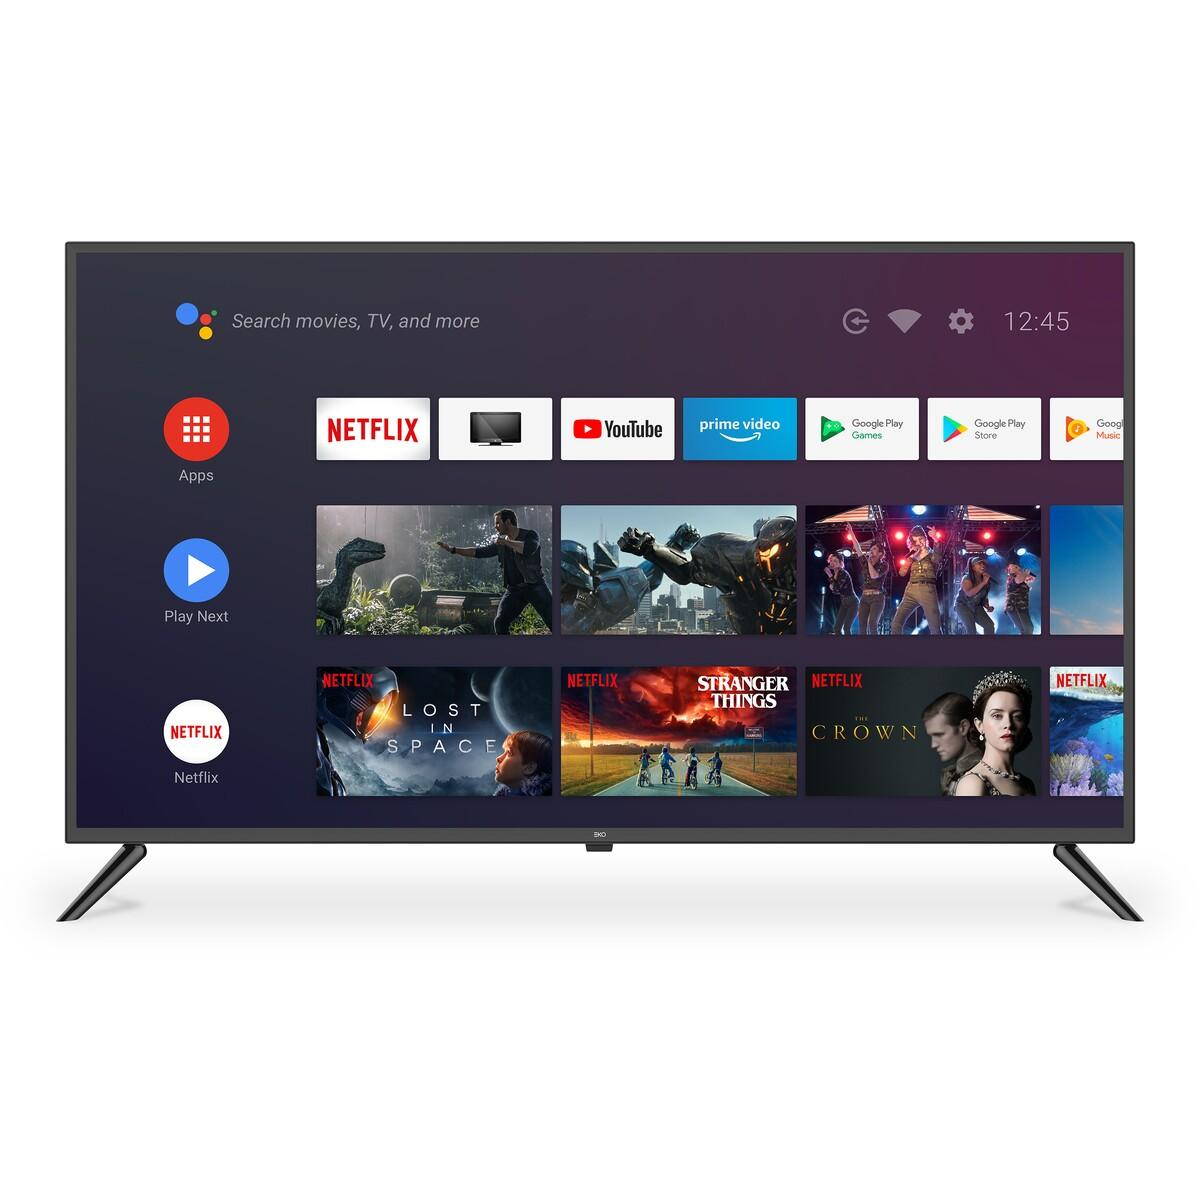 EKO 42″ Full HD Android TV with Google Assistant